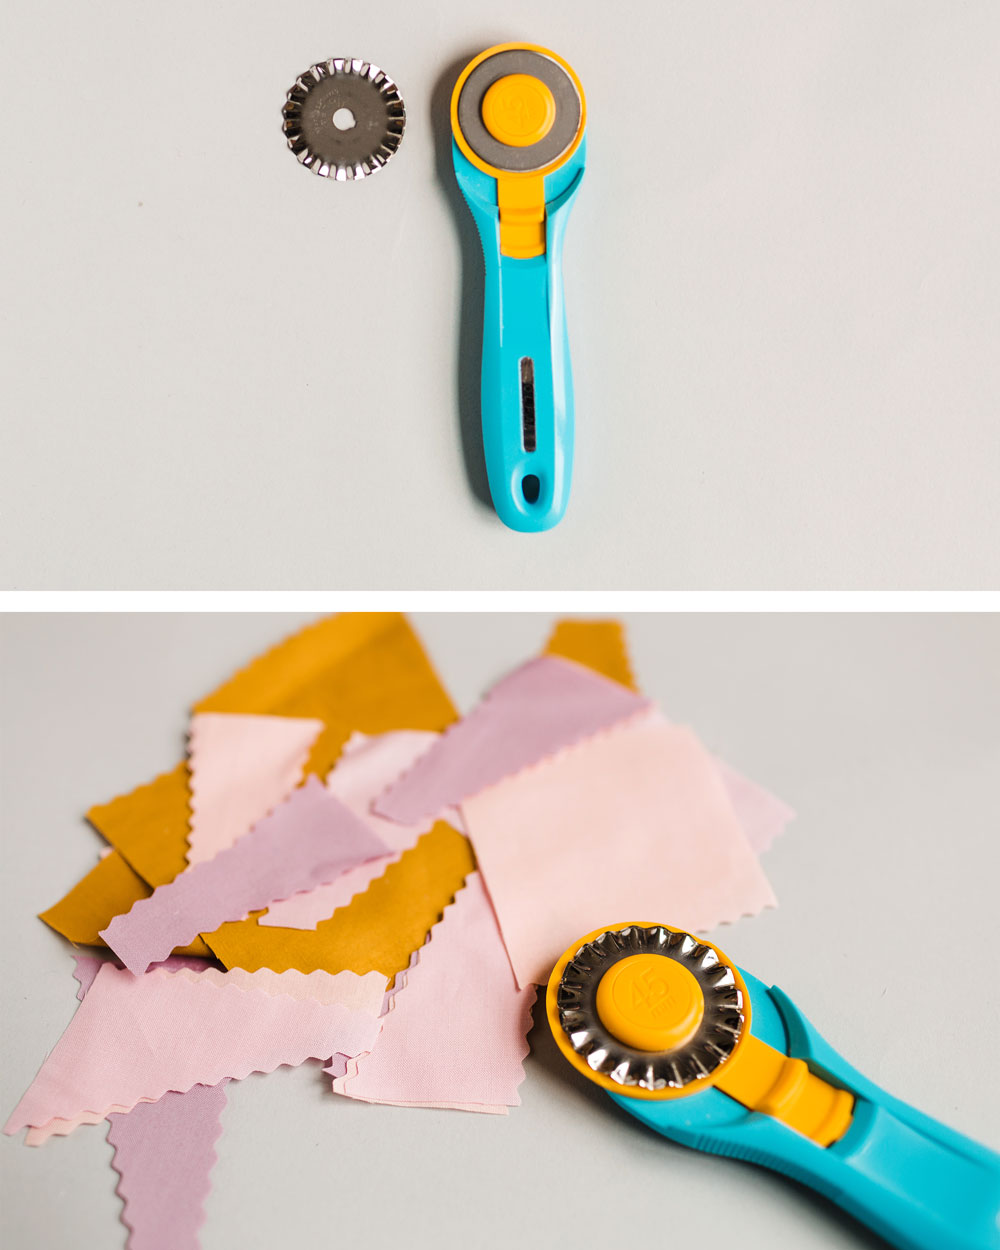 Learn all about different rotary cutter sizes, handles, and blades in this complete guide to quilting rotary cutters. Find the best rotary cutter for you! Suzy Quilts #rotarycutter #quiltingtools #quilting